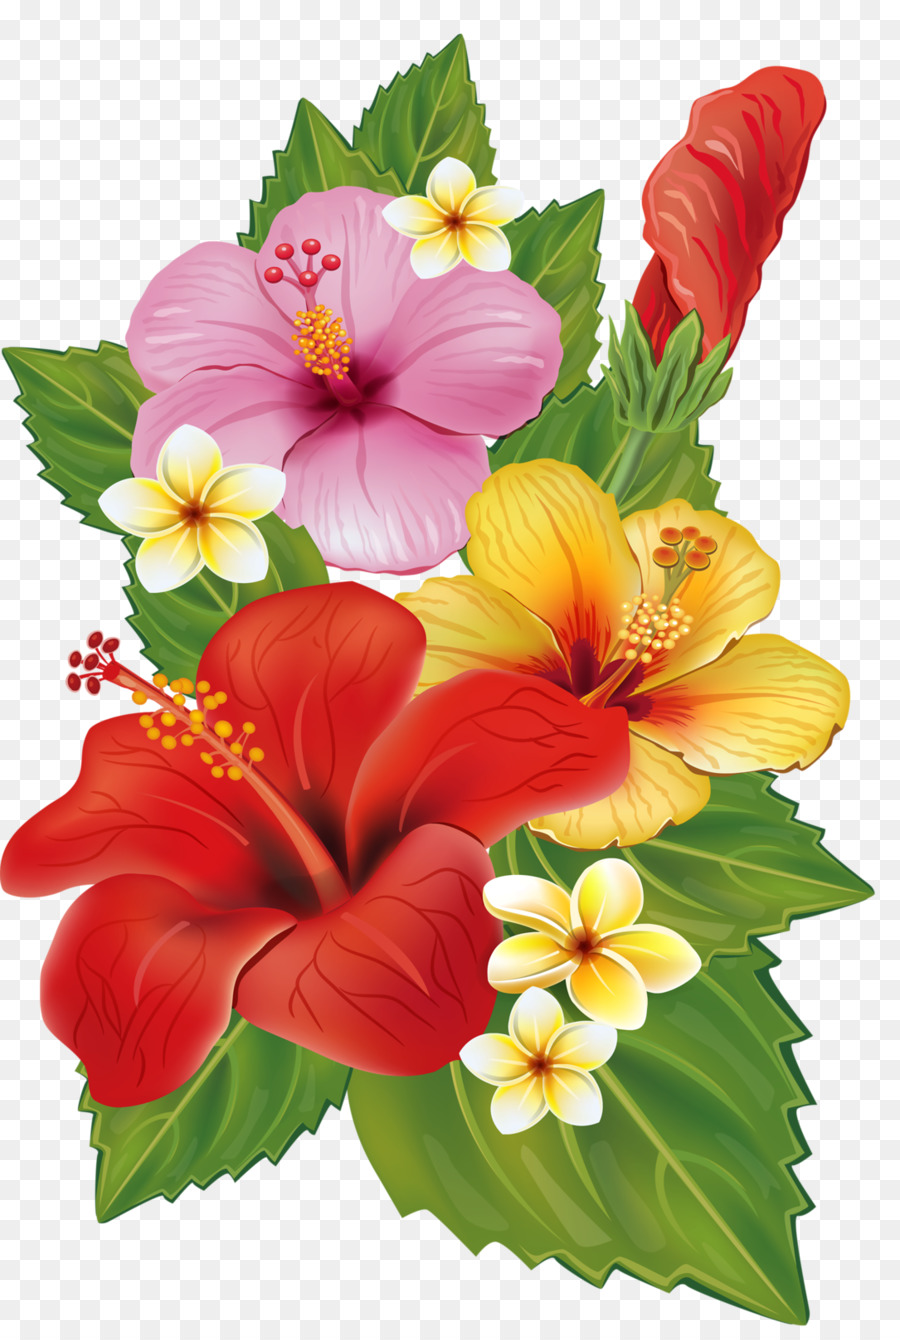 Flower bouquet Decorative arts Clip art - tropical flower png ...